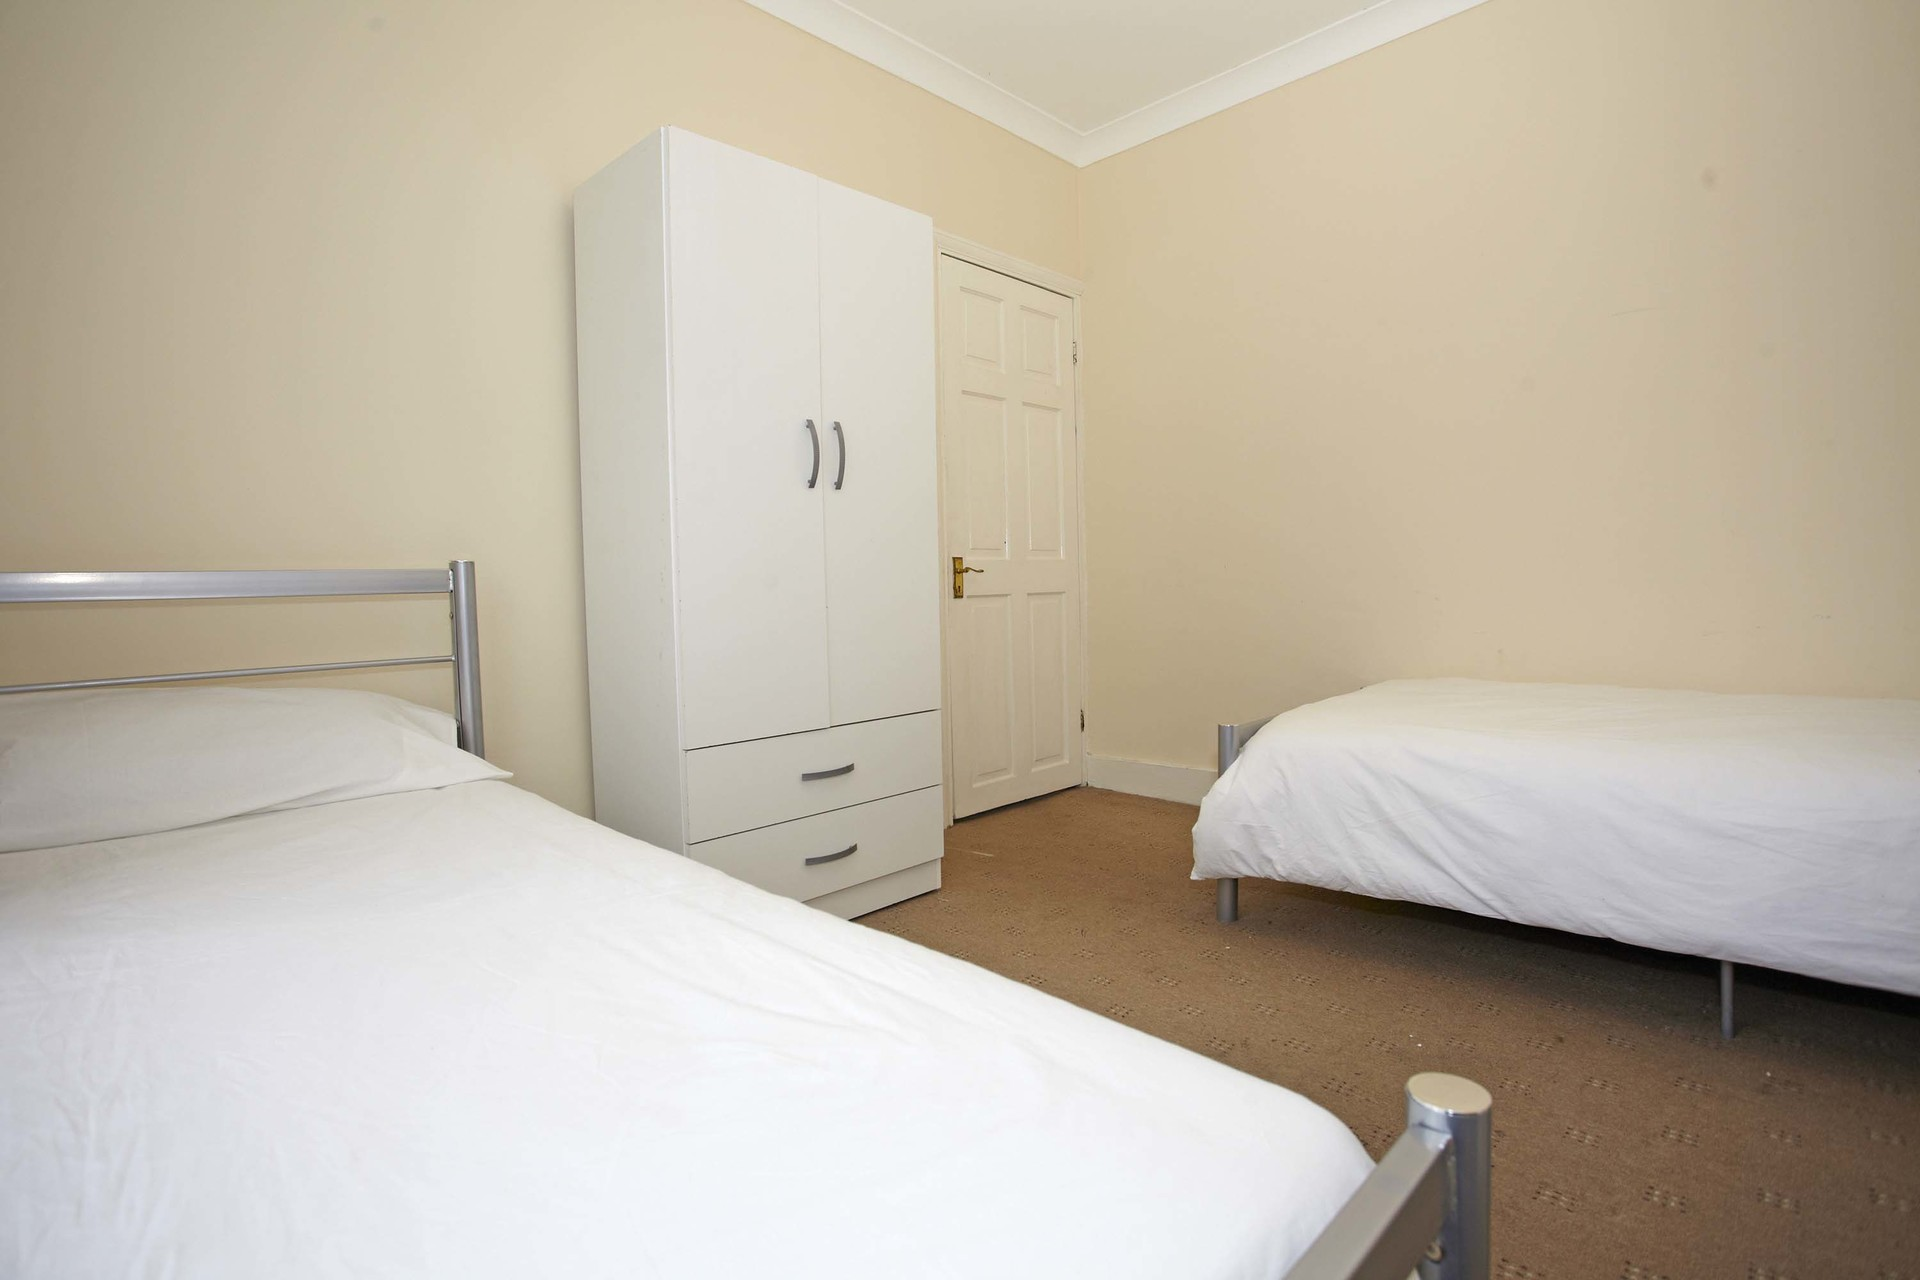 amazing-single-room-available-students-young-professionals-london-a460ac4c4cae9d7e403782b7709cb89c